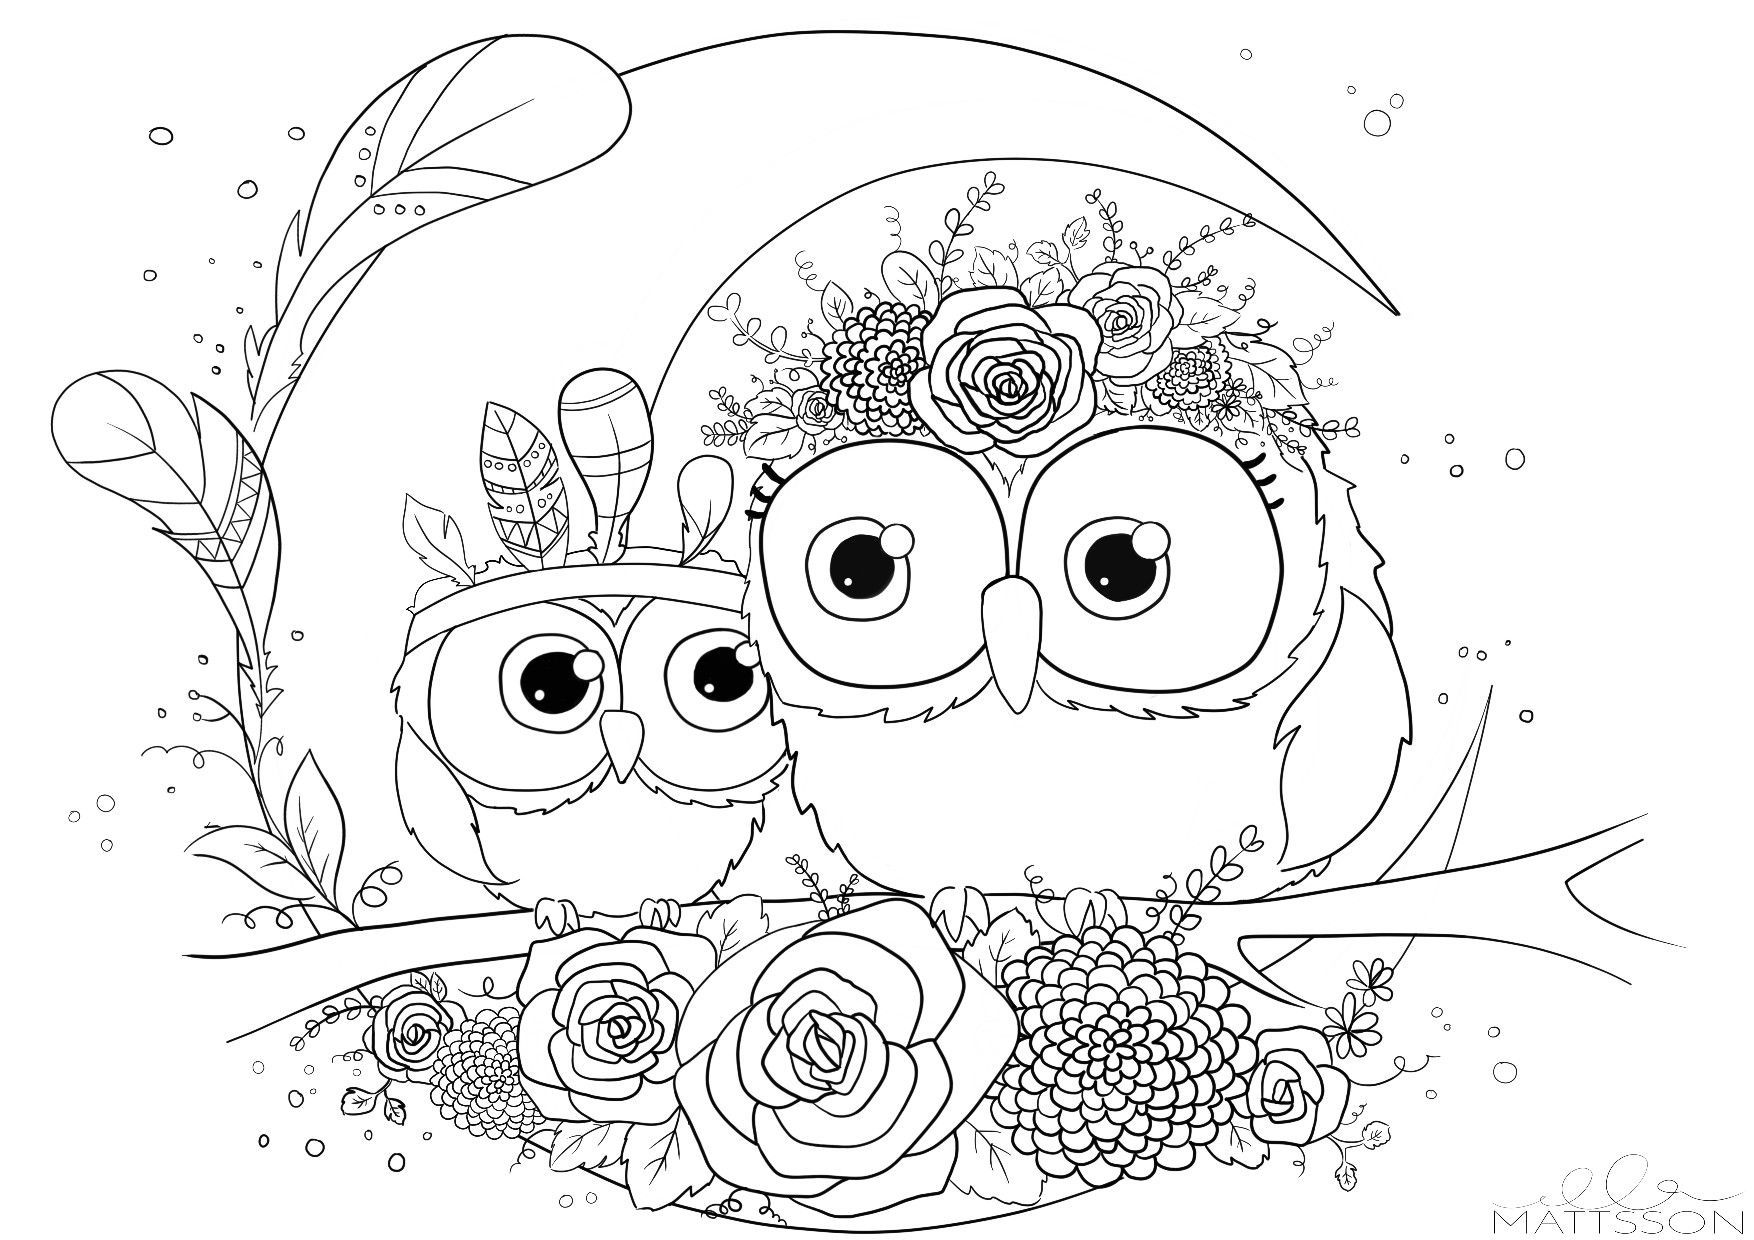 Eule Ausmalbild Kostenlose Herbst Ausmalbilder Und Fensterbilder Dieses Kostenlose Eule Ausmalbild Ka Owl Coloring Pages Love Coloring Pages Coloring Pages